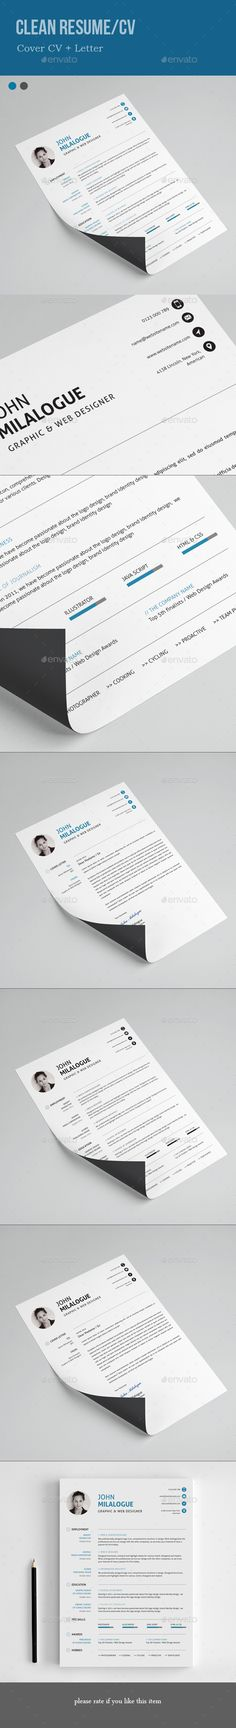 Resume Cover Letter Templates Personal Cv  Resume & Cover Letter  Pinterest  Resume Cover .